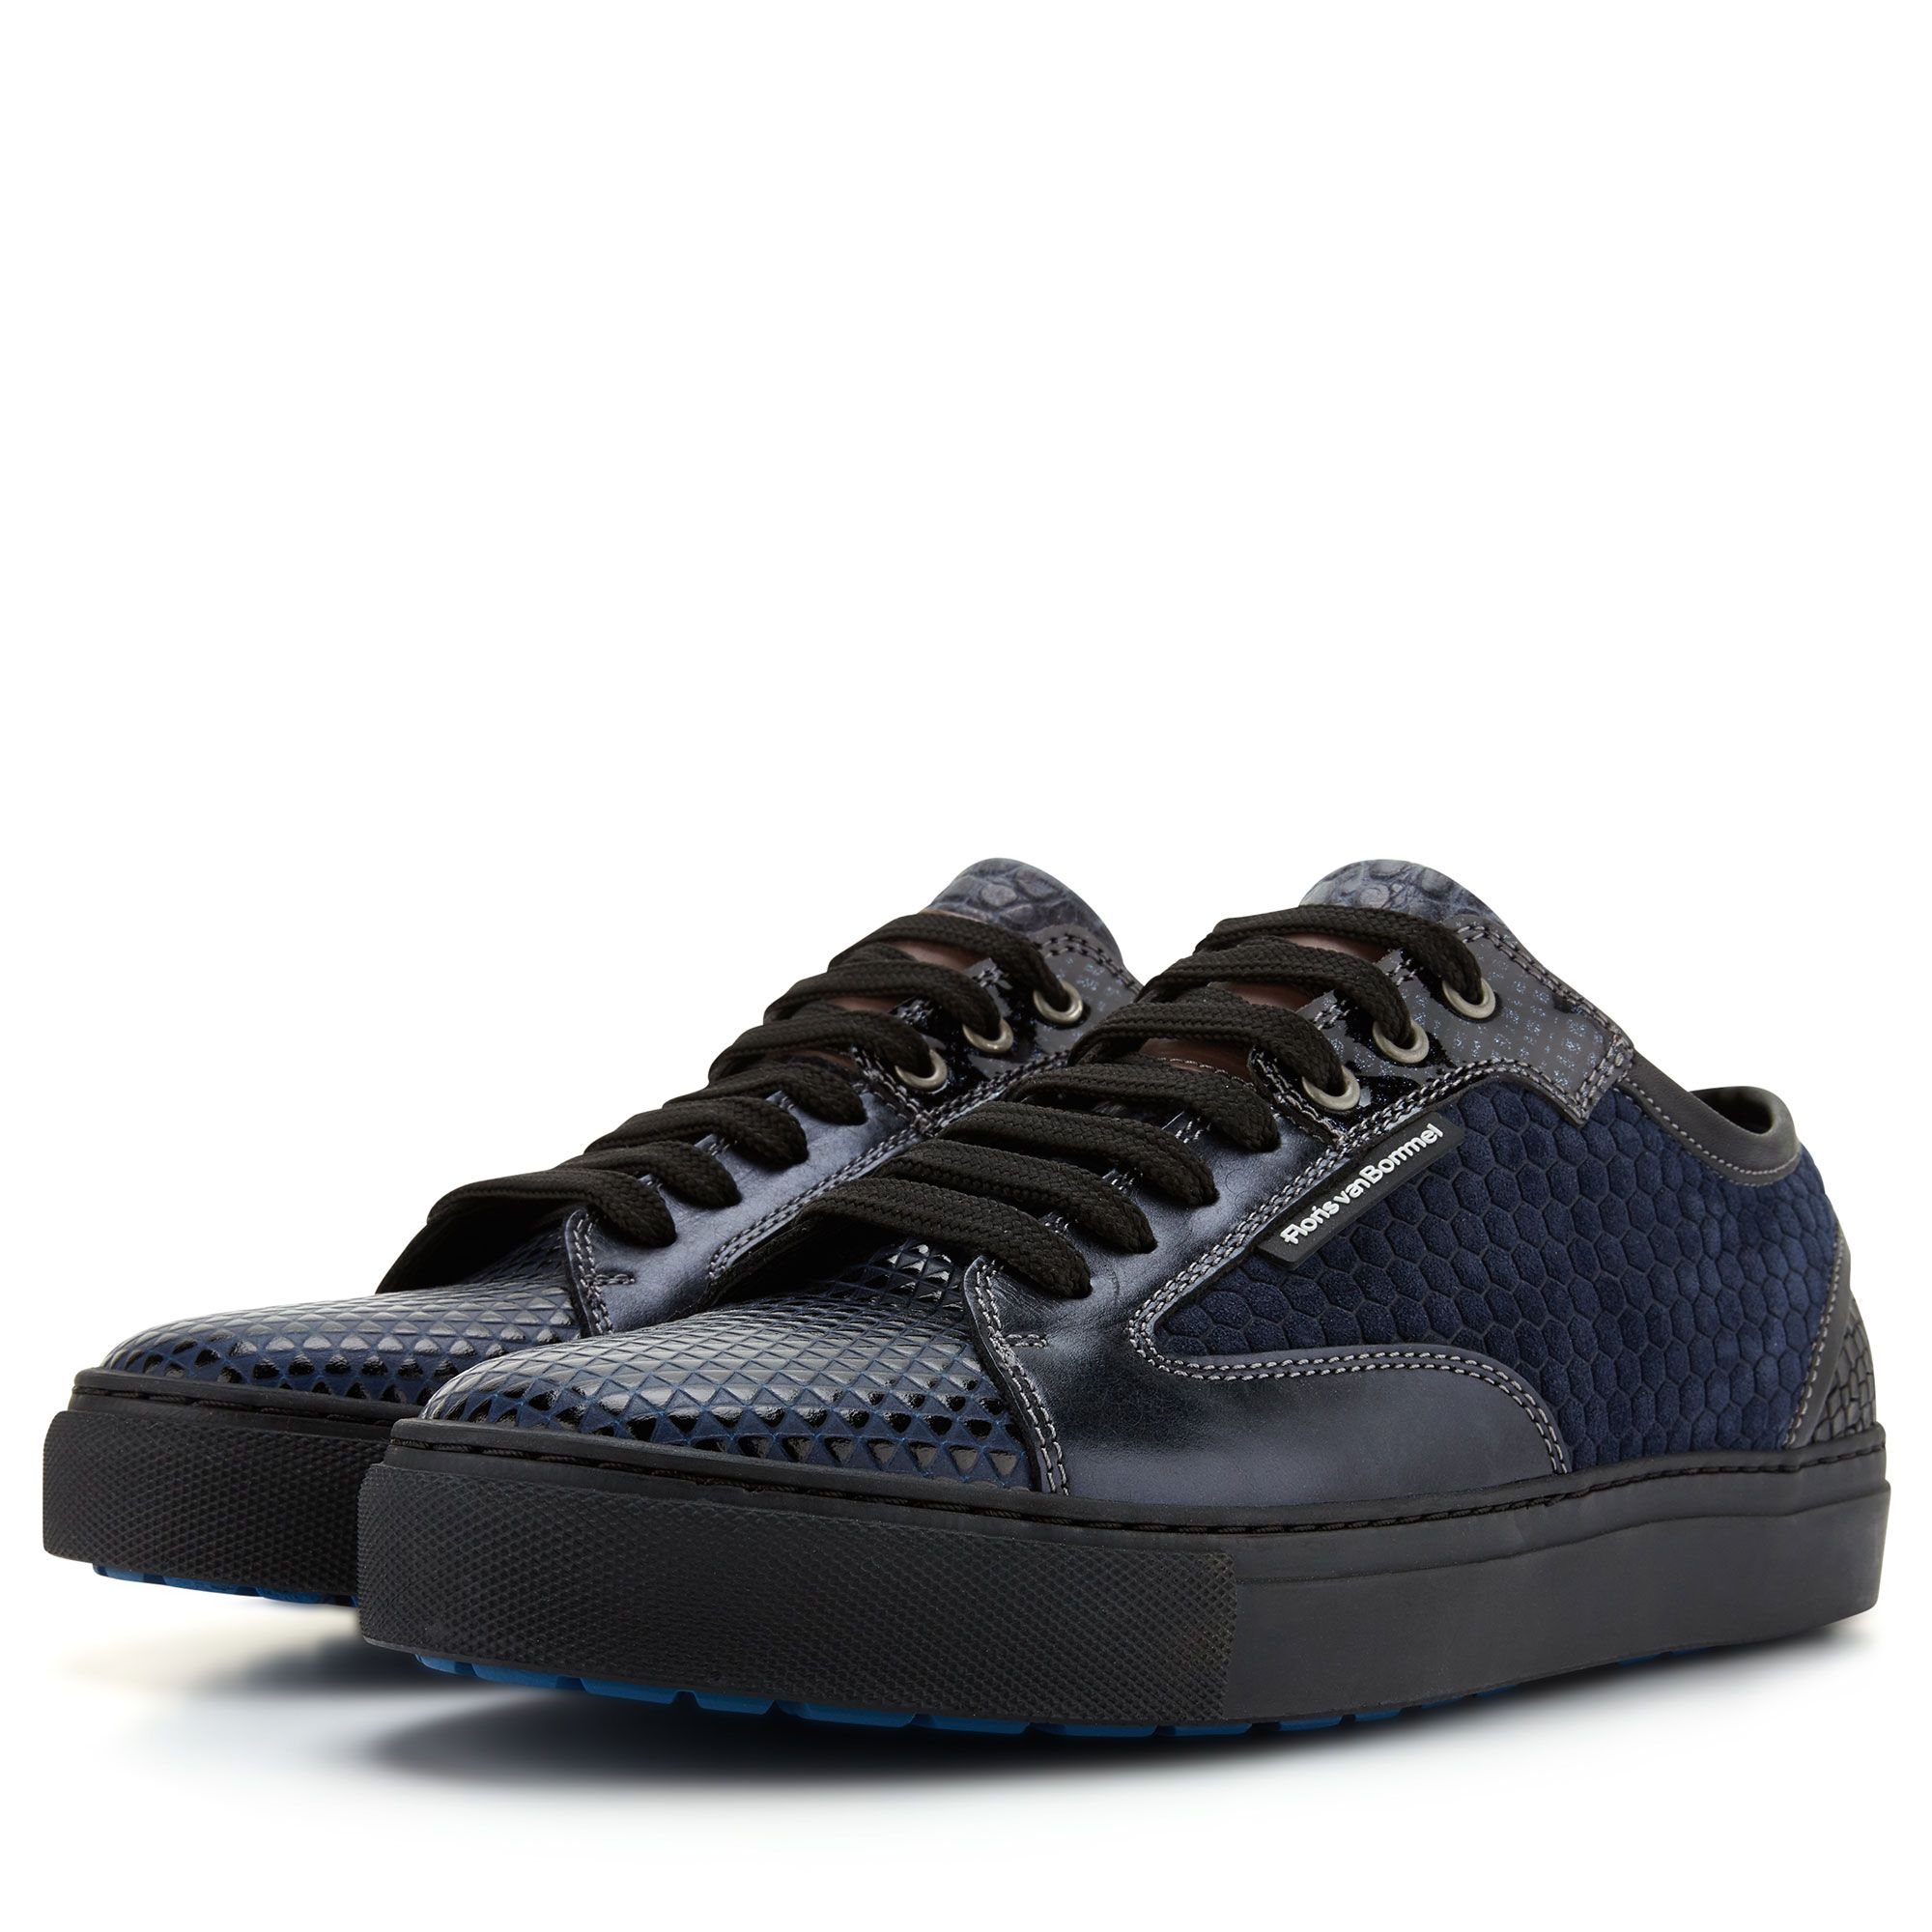 180a6913e9 14319 04 - Floris van Bommel dark blue leather men s sneaker